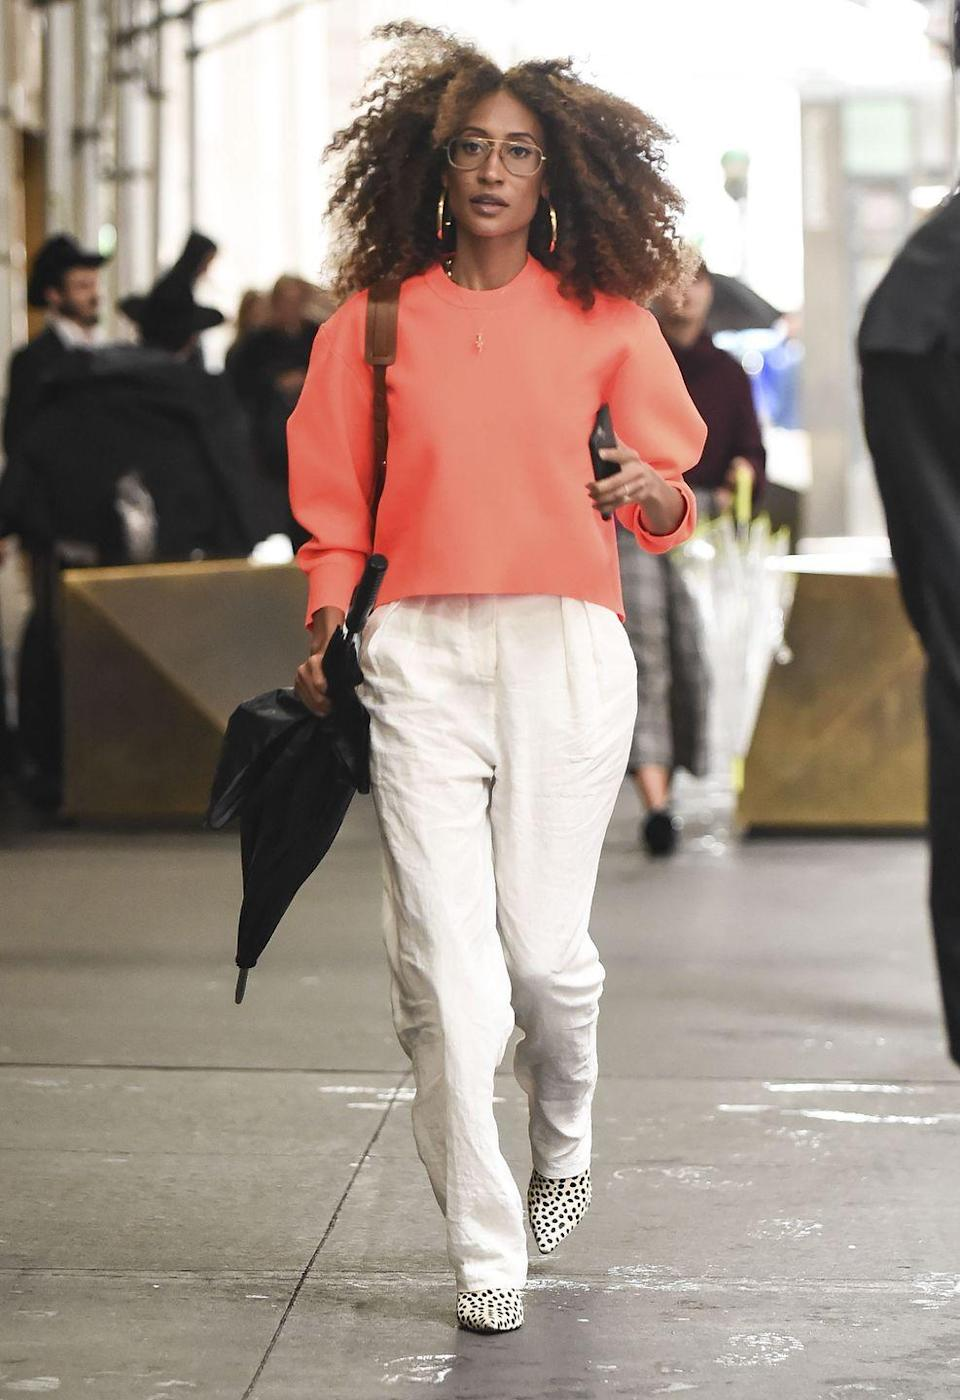 """<p><a href=""""https://www.seventeen.com/fashion/g27155530/how-to-wear-all-white/"""" rel=""""nofollow noopener"""" target=""""_blank"""" data-ylk=""""slk:White staple pieces"""" class=""""link rapid-noclick-resp"""">White staple pieces</a> have a longer street life than just the summertime. Pair your favorite pieces with fall trends (this year, neons and leopard print) to keep them in season.</p><p><strong>What you'll need:</strong> <em>90s Boyfriend Denim Overalls, $67.46, AE</em></p><p><a class=""""link rapid-noclick-resp"""" href=""""https://go.redirectingat.com?id=74968X1596630&url=https%3A%2F%2Fwww.ae.com%2Fus%2Fen%2Fp%2Fwomen%2Fbottoms%2Foveralls%2Fae-90s-boyfriend-denim-overall%2F0436_2522_100&sref=https%3A%2F%2Fwww.seventeen.com%2Ffashion%2Fstyle-advice%2Fg22548712%2Fcute-fall-outfits%2F"""" rel=""""nofollow noopener"""" target=""""_blank"""" data-ylk=""""slk:SHOP HERE"""">SHOP HERE</a></p>"""